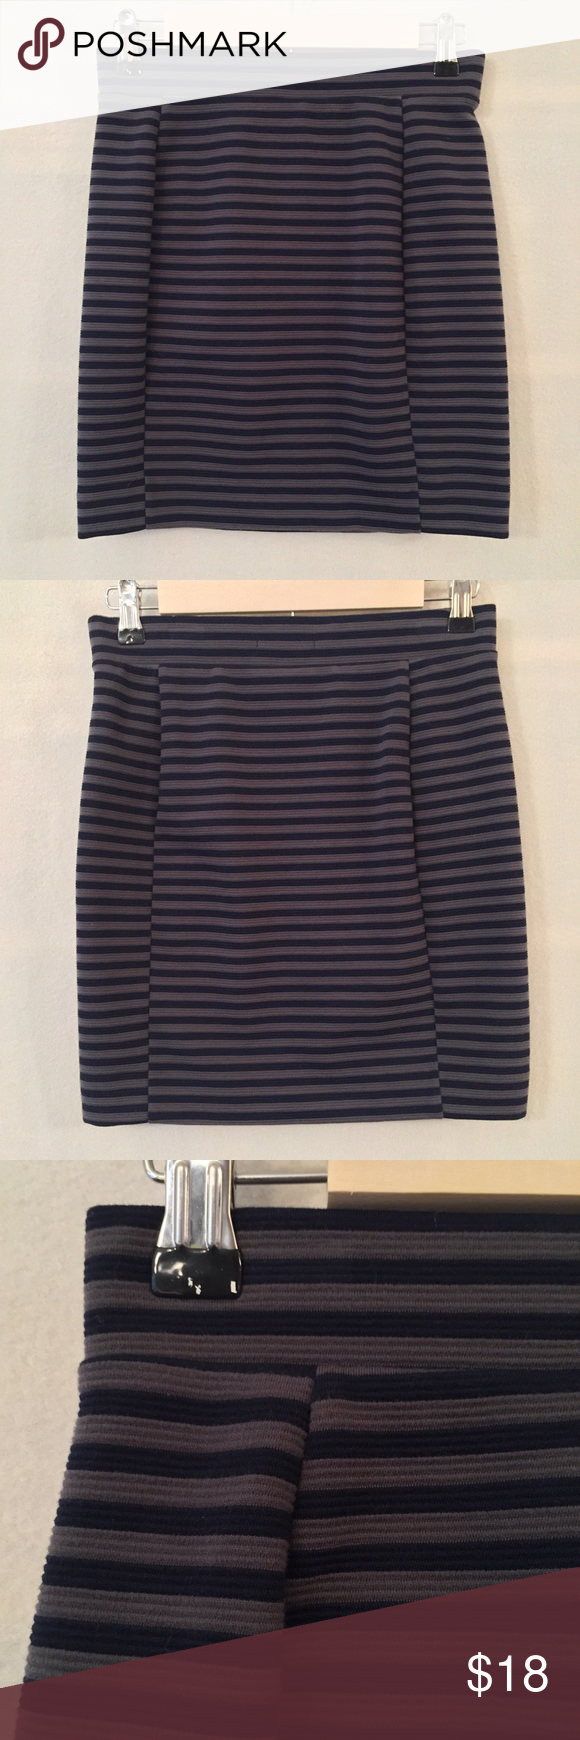 """Madewell grey & navy blue Striped mini skirt EUC. No stains or holes. Madewell """"Ridgestripe"""" navy blue and grey striped mini skirt. Strategically placed side panels. Short, straight mini skirt. Unlined. Pull on style. 67% polyester, 32% cotton, 1% spandex, textured and a hint of stretch. Measurements (flat): waist 13"""", hip 16"""", length 17"""". Style 05117. Machine wash. No trades. Madewell Skirts Mini"""